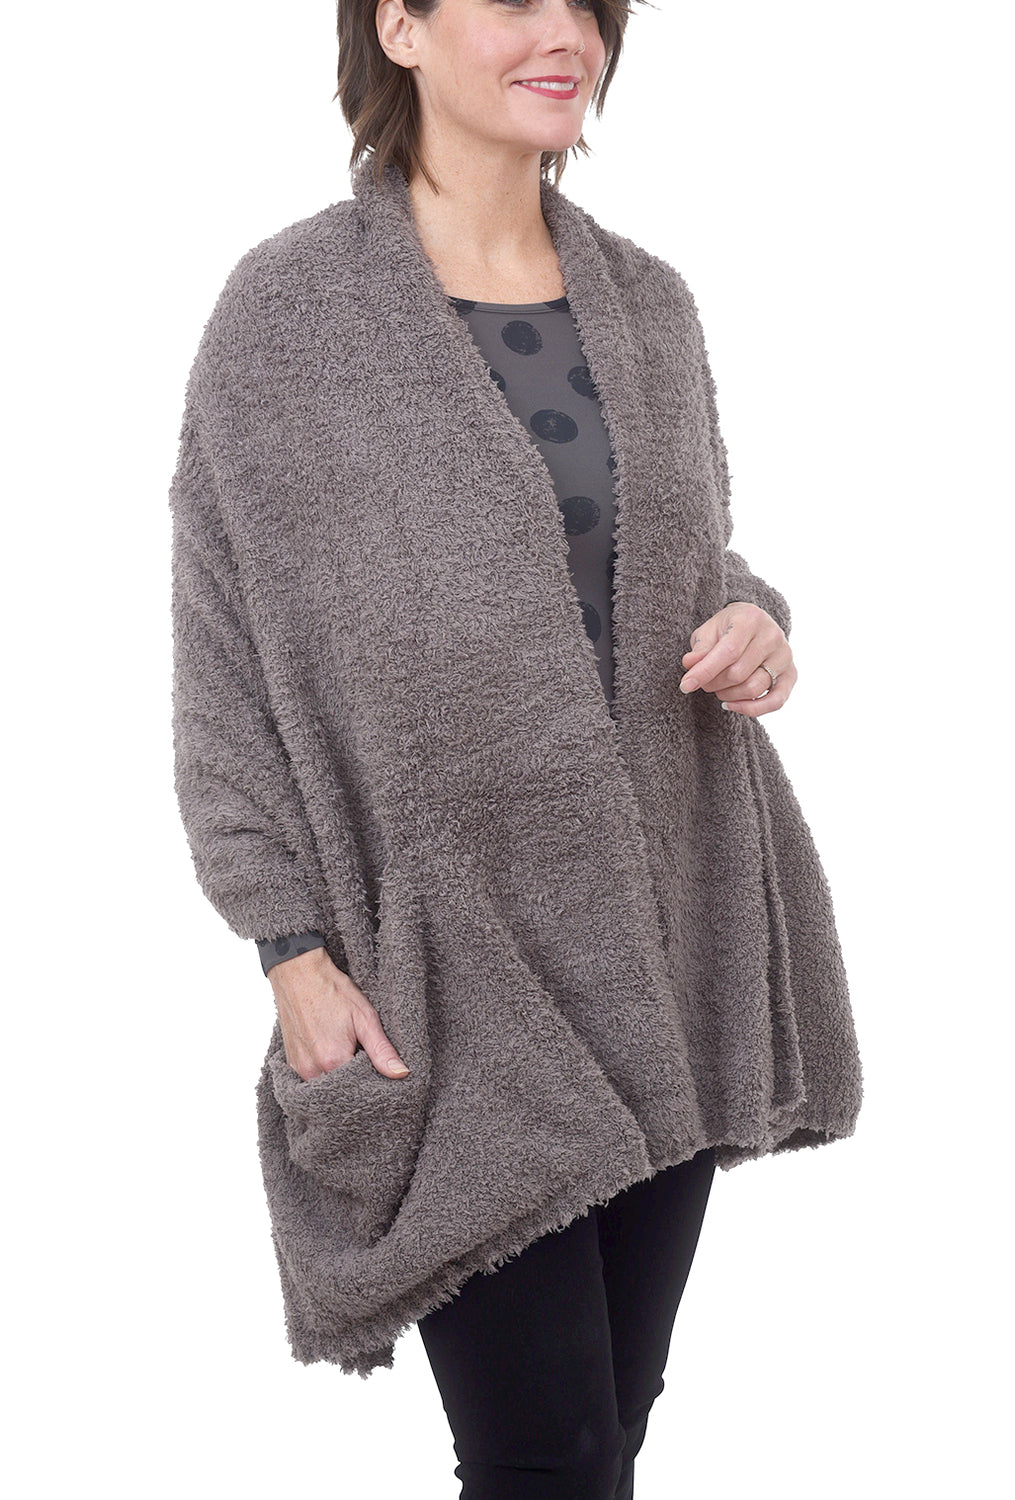 Cozychic Travel Shawl, Charcoal